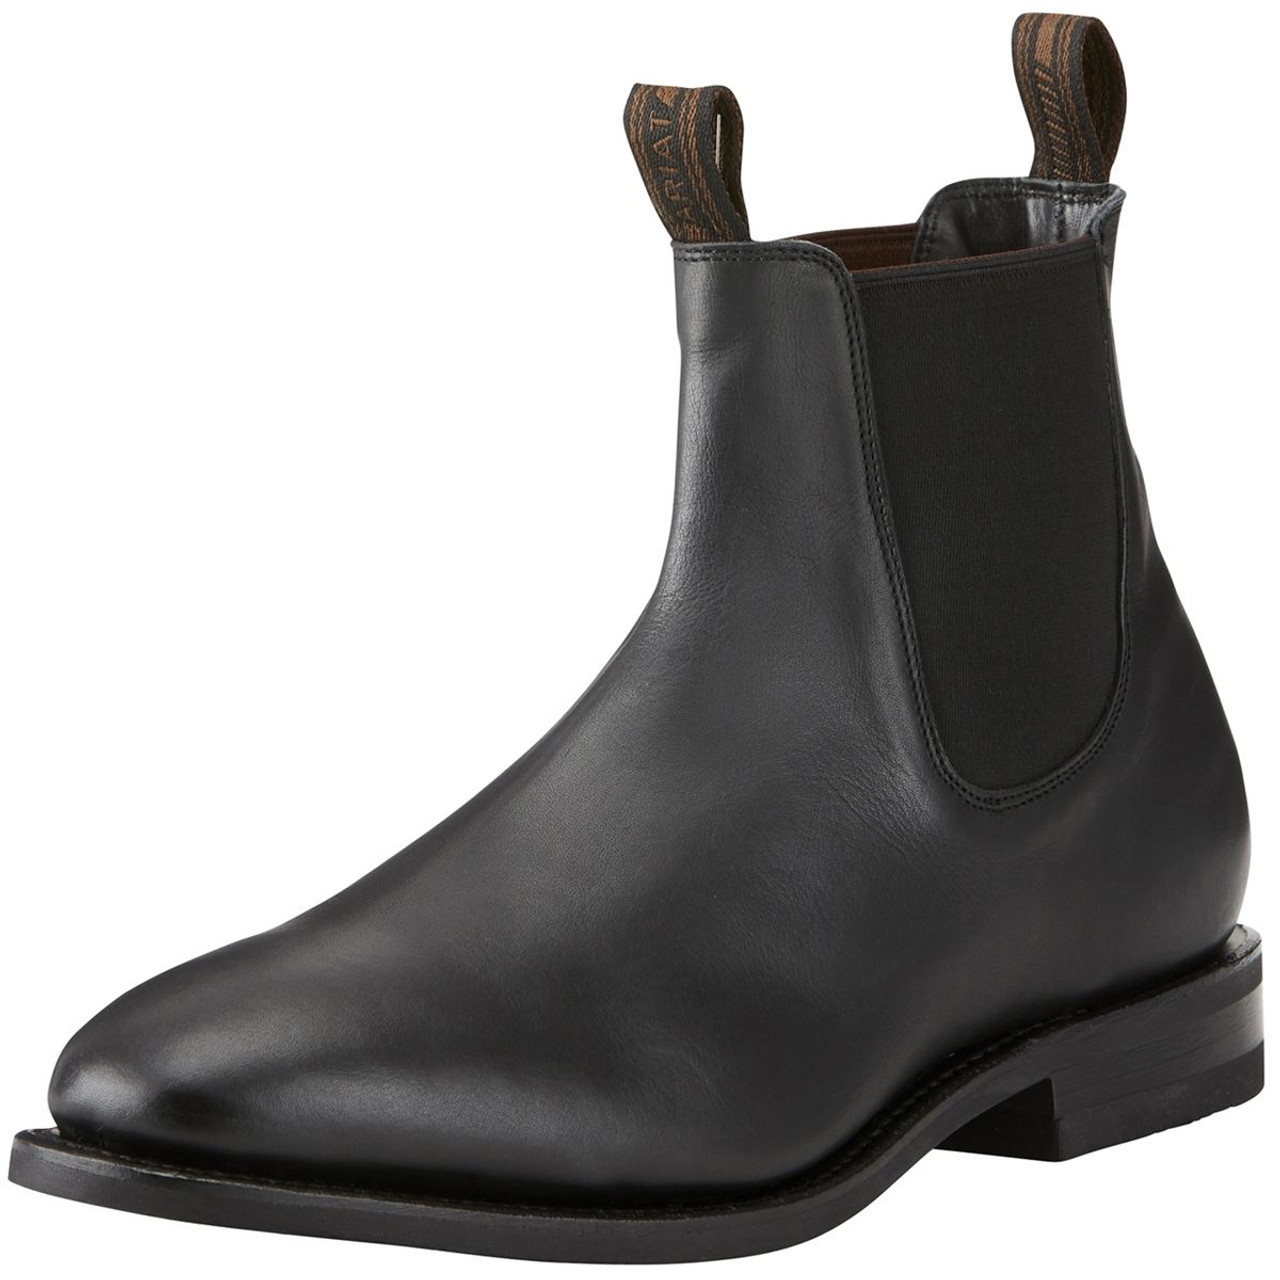 Black - Ariat Stanbroke Boots